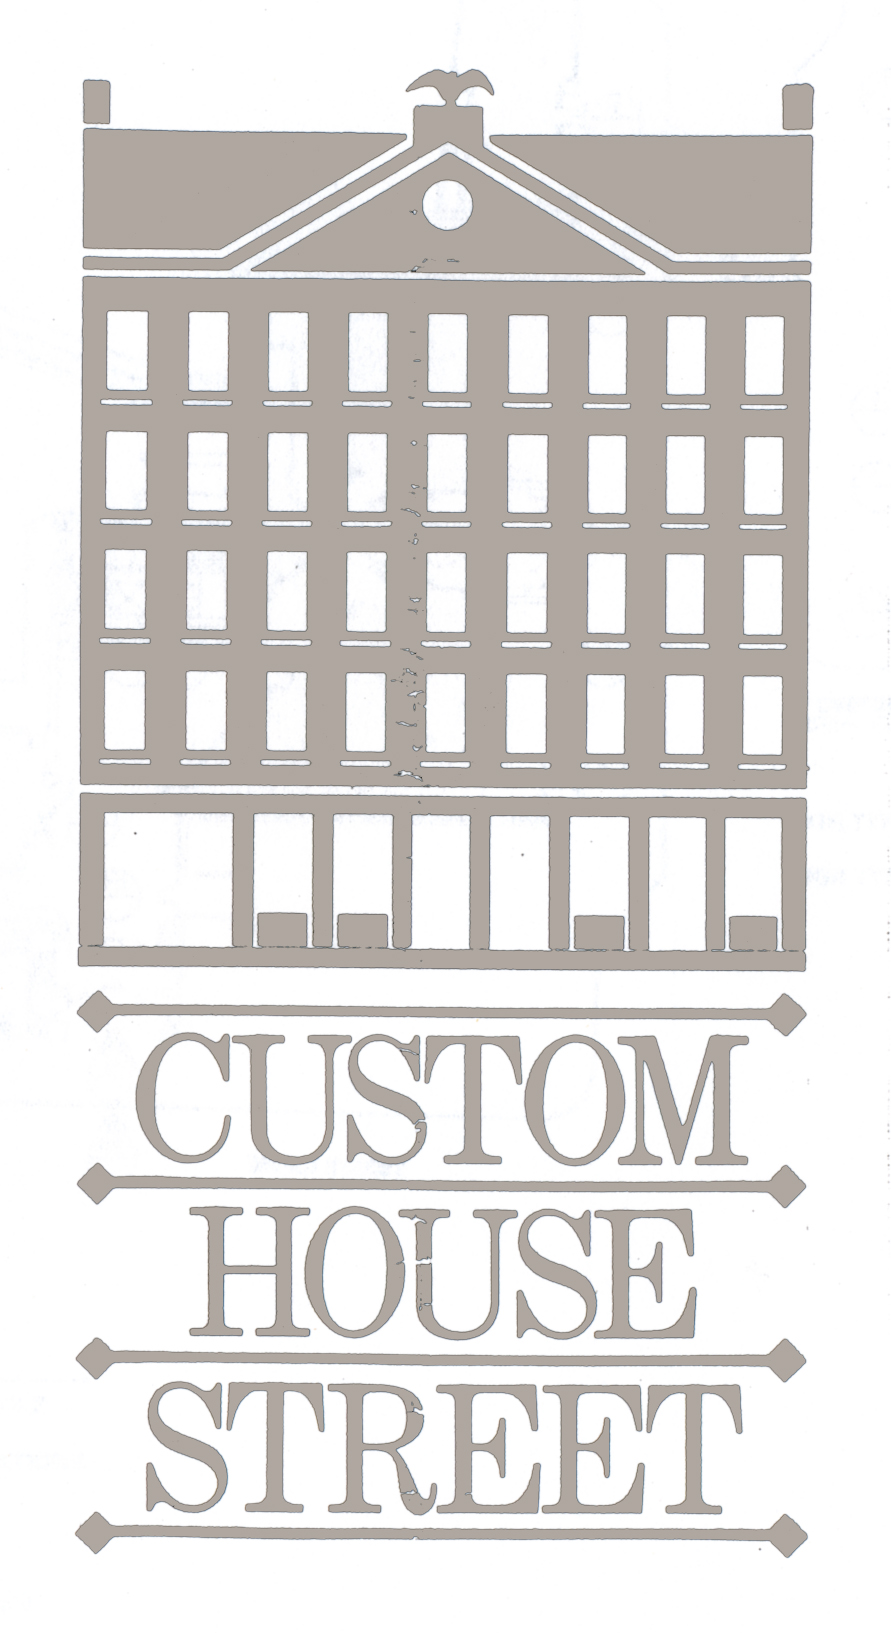 Custom House development logo, featuring the outline of the original 1810 Boston Customs House.